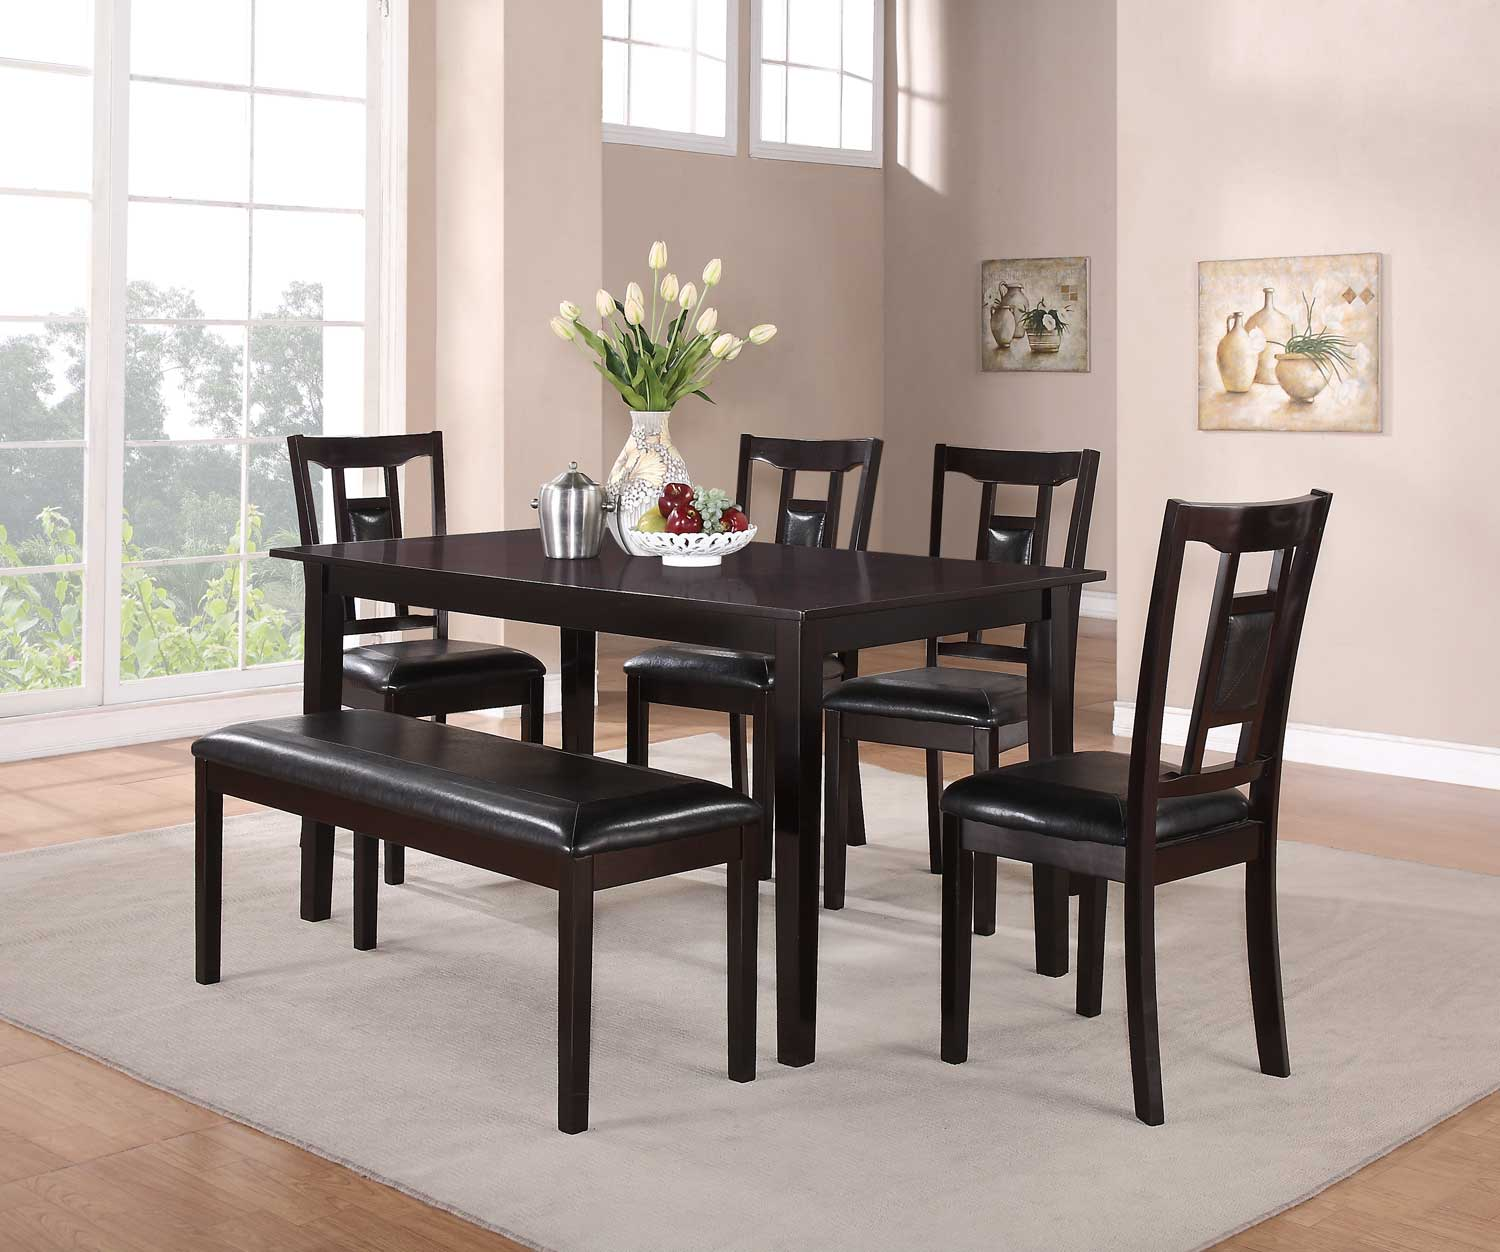 Homelegance Tristan 6PC Dinette Set with Bench - Espresso